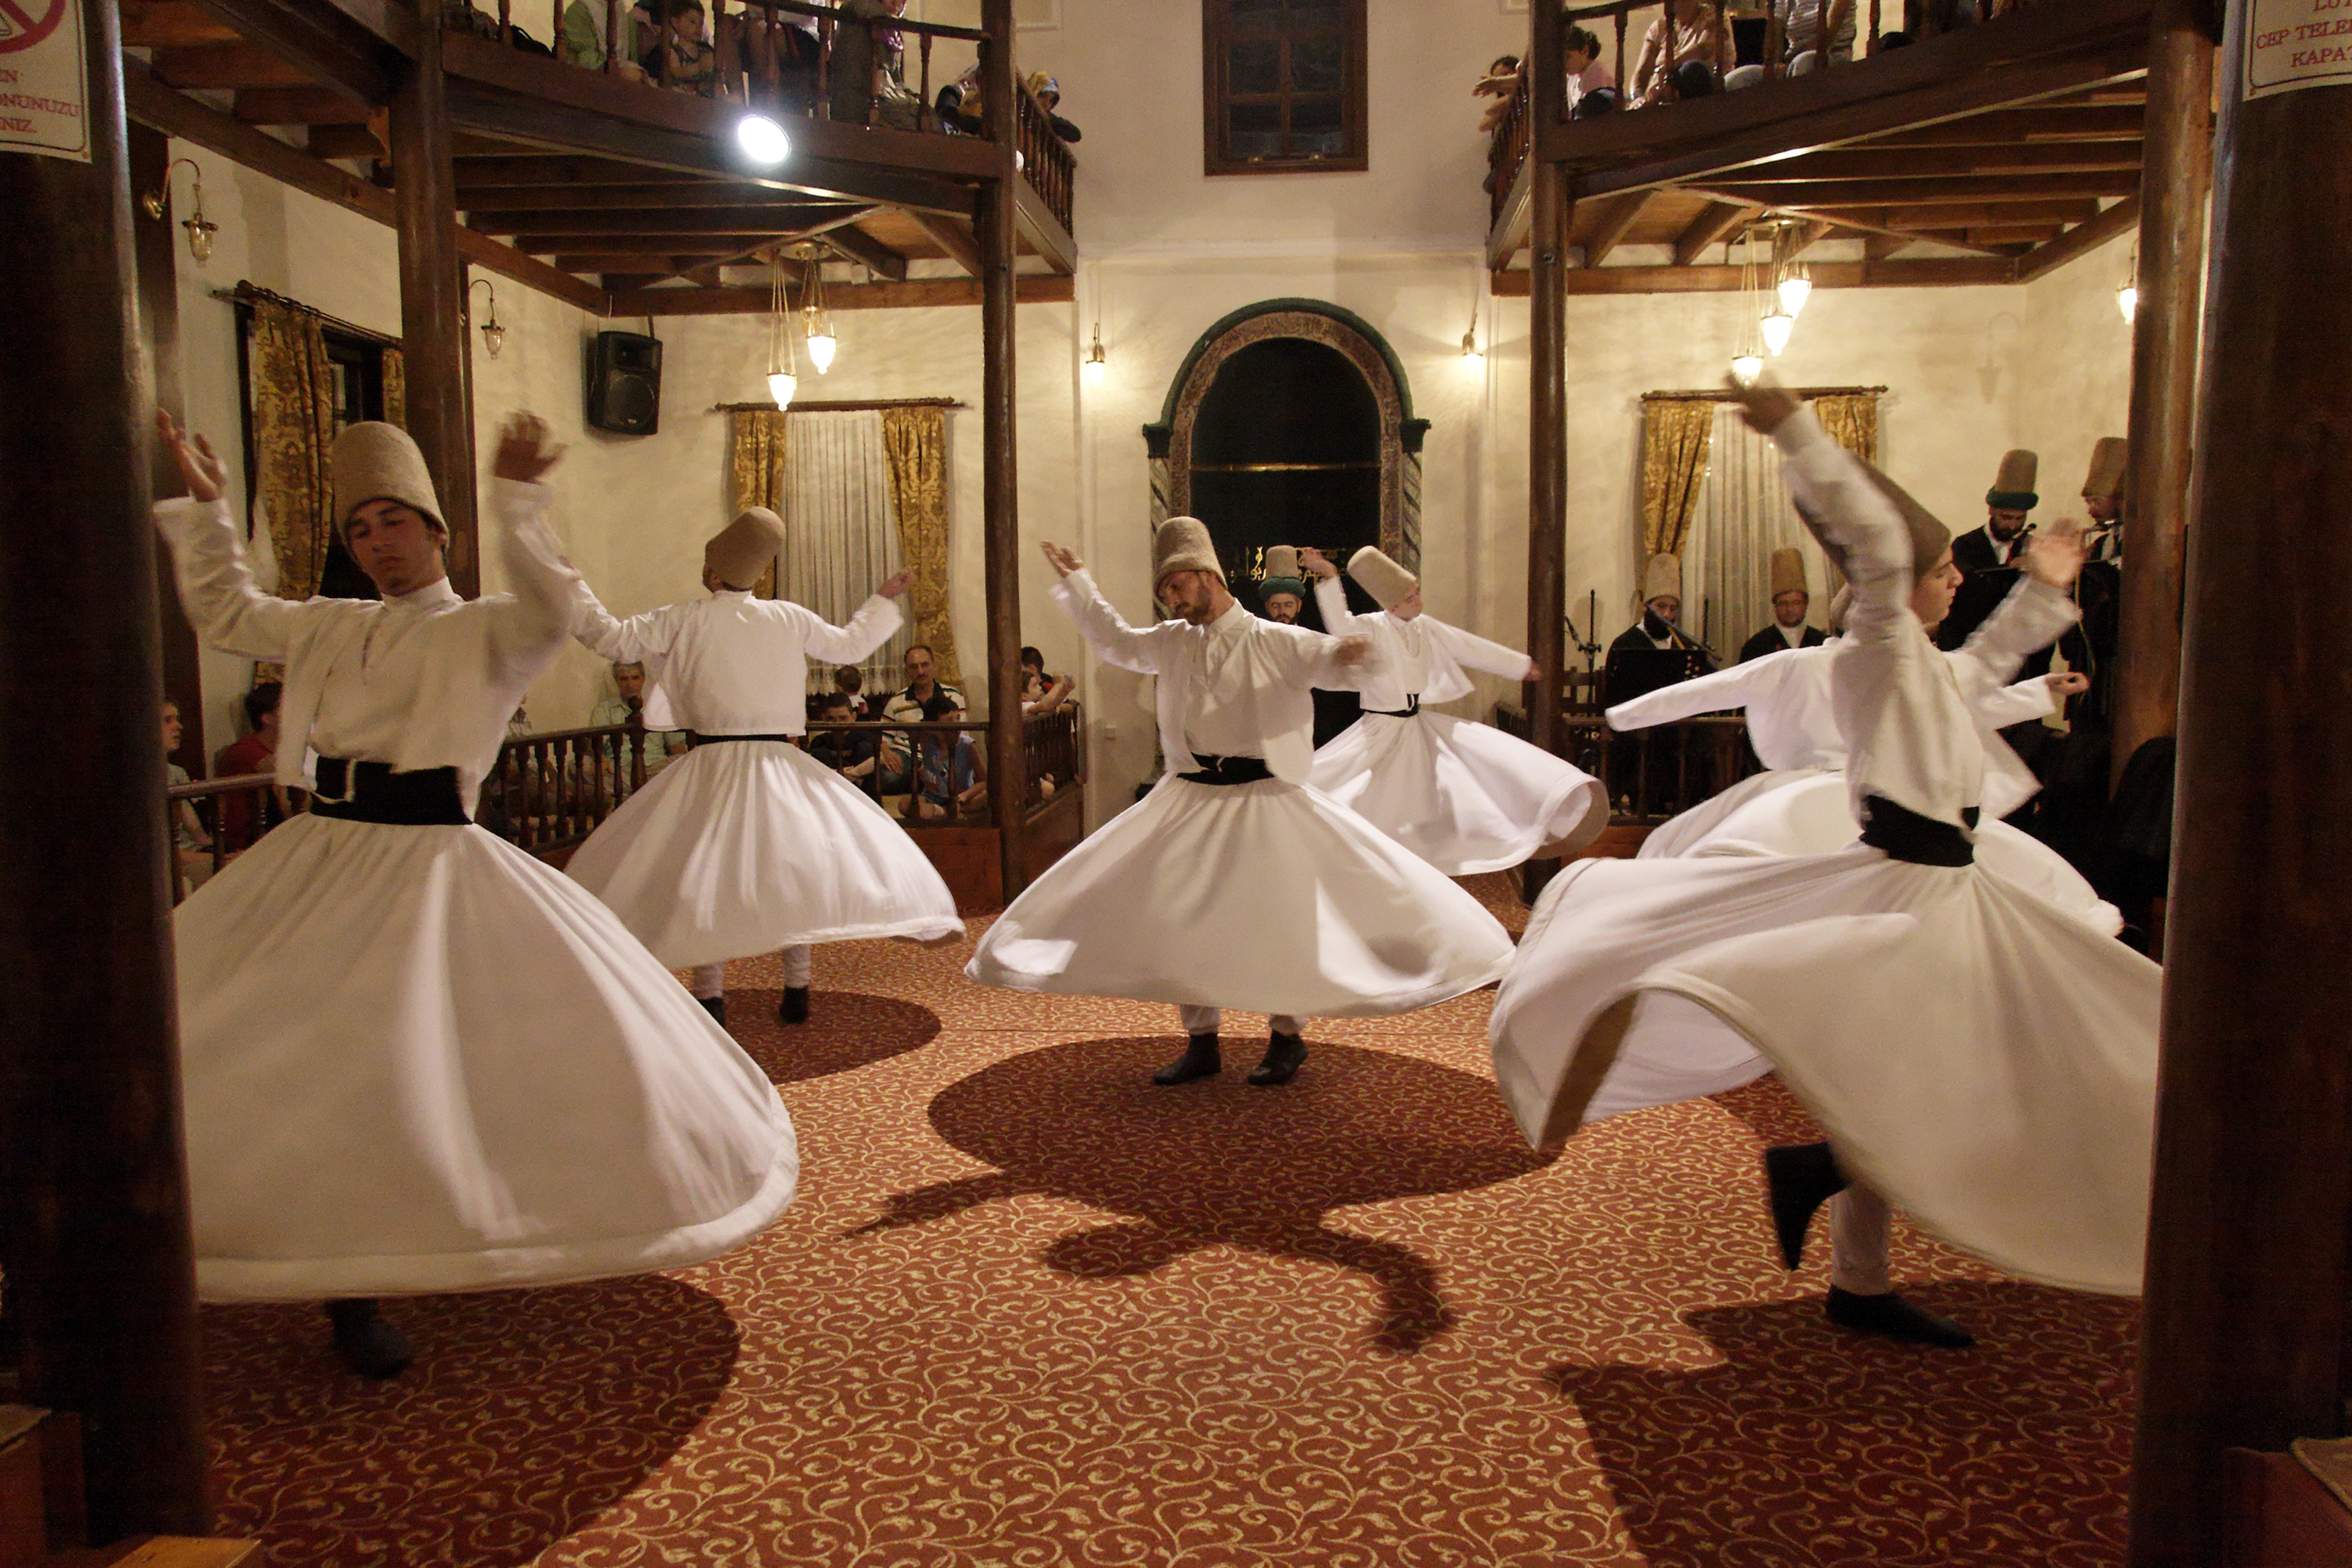 Whirling Dervishes, Bursa Turkey 5.jpg - Whirling Dervishes, Bursa, Turkey